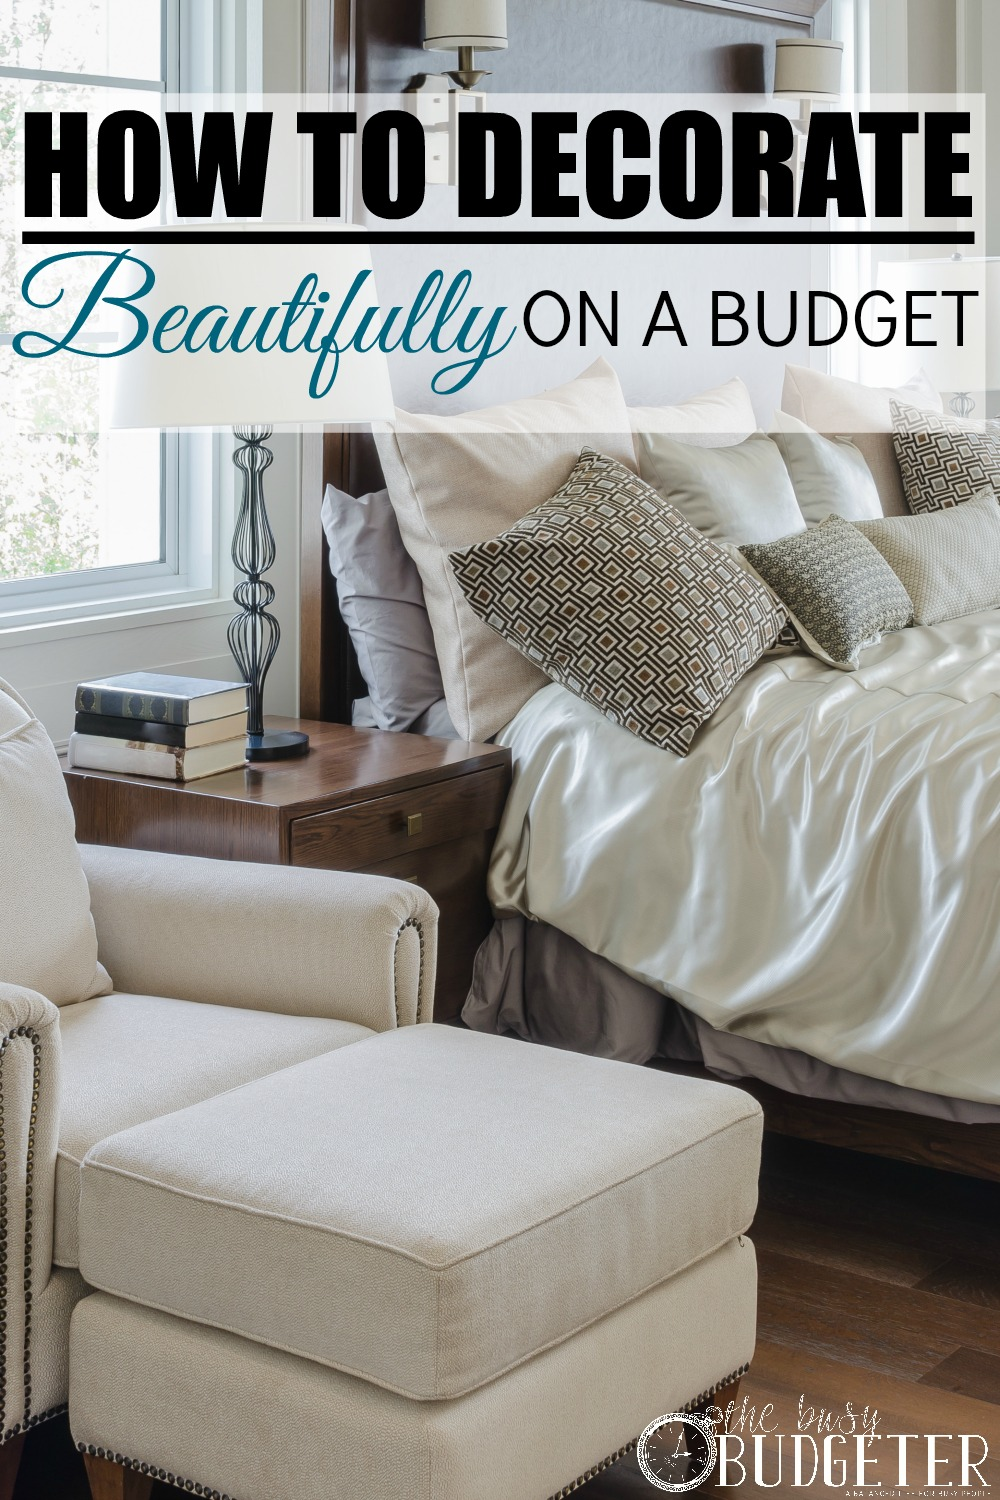 The 6 Step System to Decorate Beautifully on a Budget. Yes! Oh my gosh Yes! We just bought a new house and everything we own is old and dingy. I love that I start doing this now! Great ideas and having the system in place makes it so I don;t waste money on the little things like throw pillows at the expense of the things that will make the biggest impact. This was a refreshing pin after looking at decor ideas here all day that I could never ever afford!